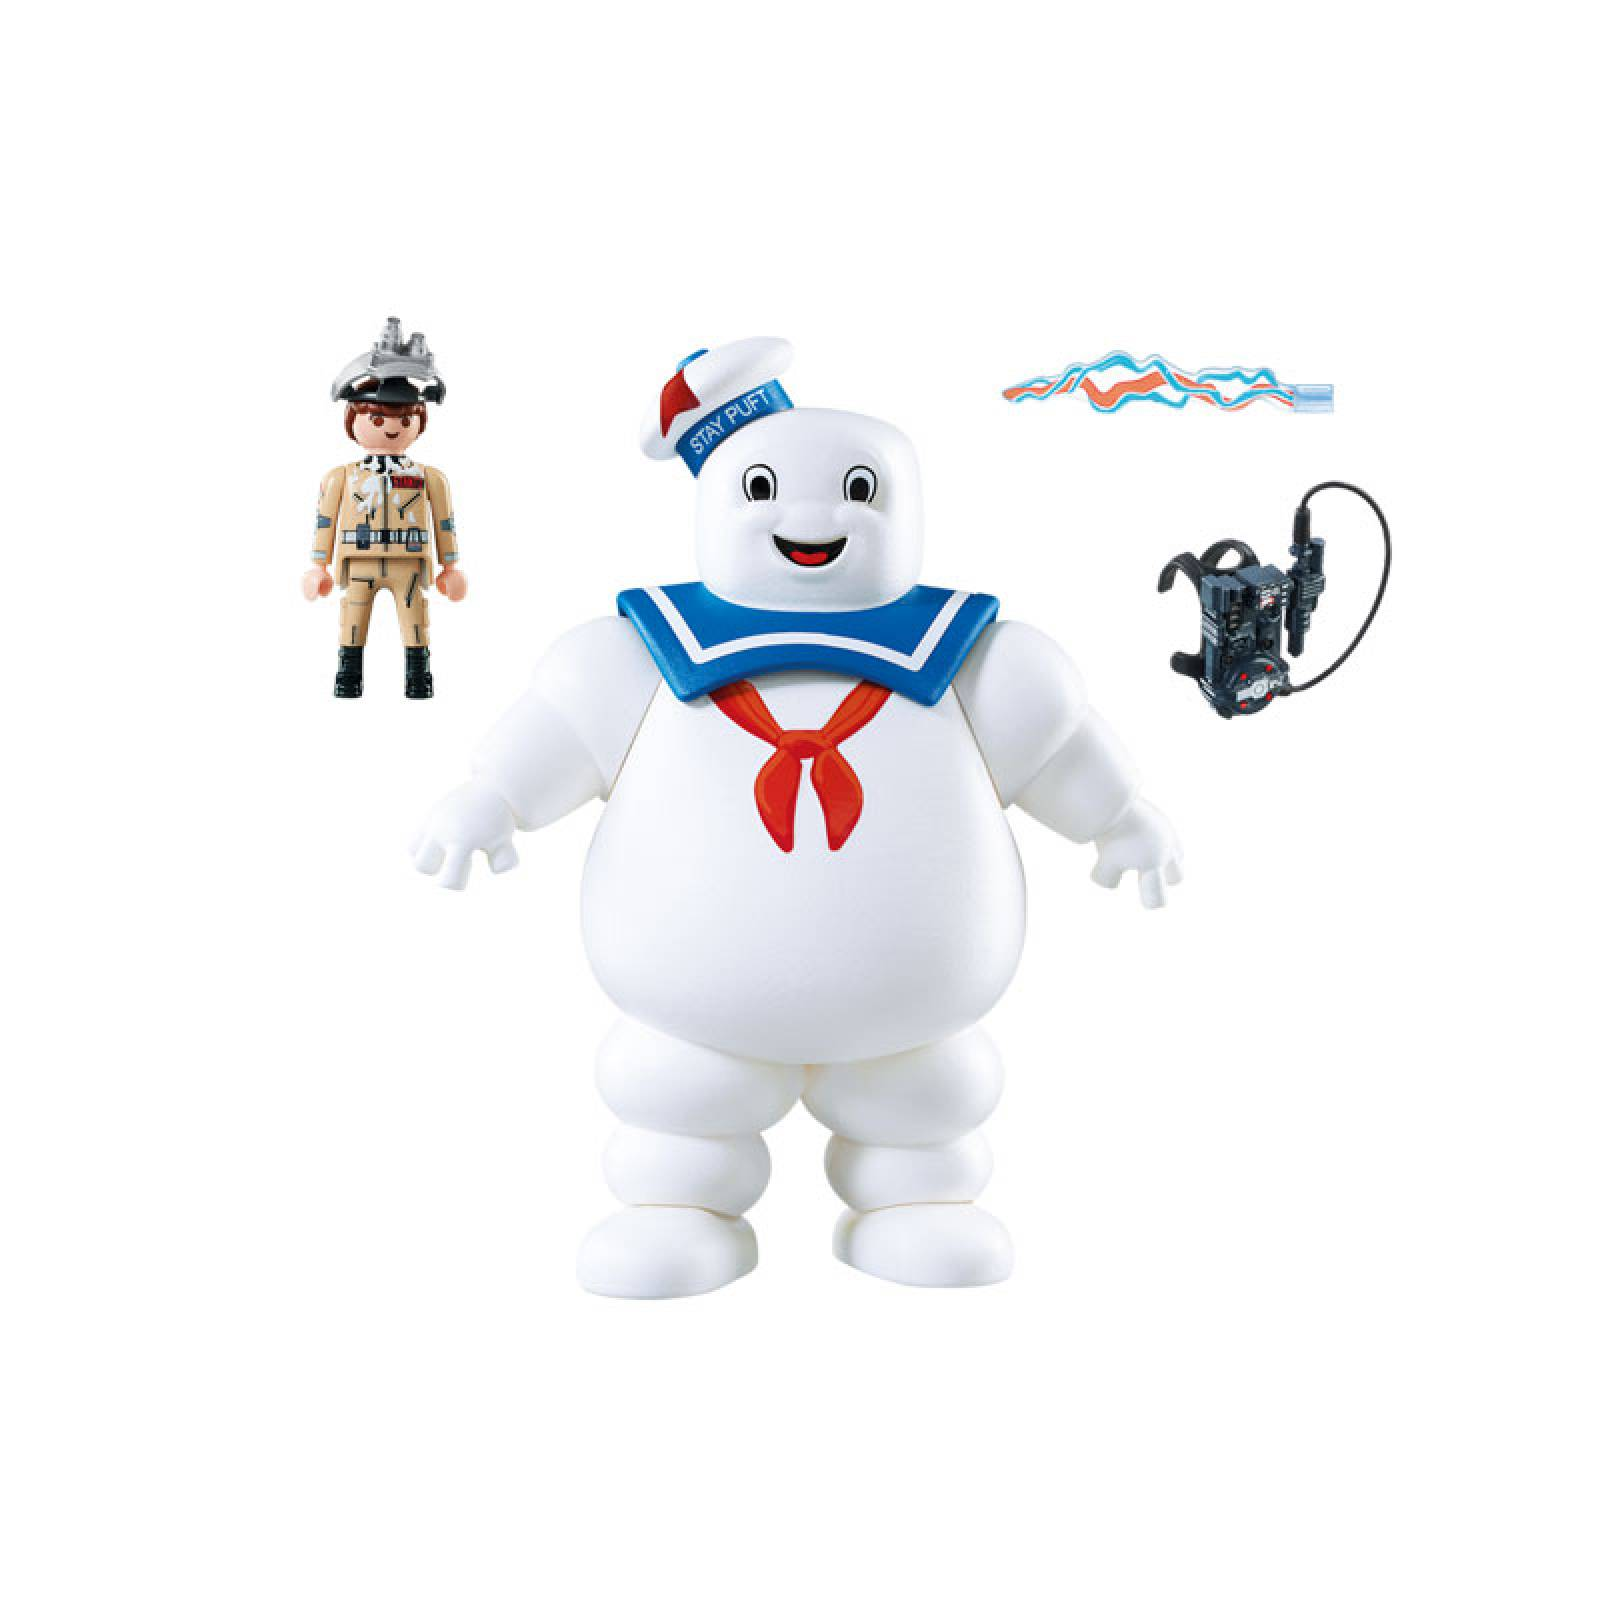 Ghostbusters™ Stay Puft Marshmallow Man Playmobil 9221 6+ thumbnails